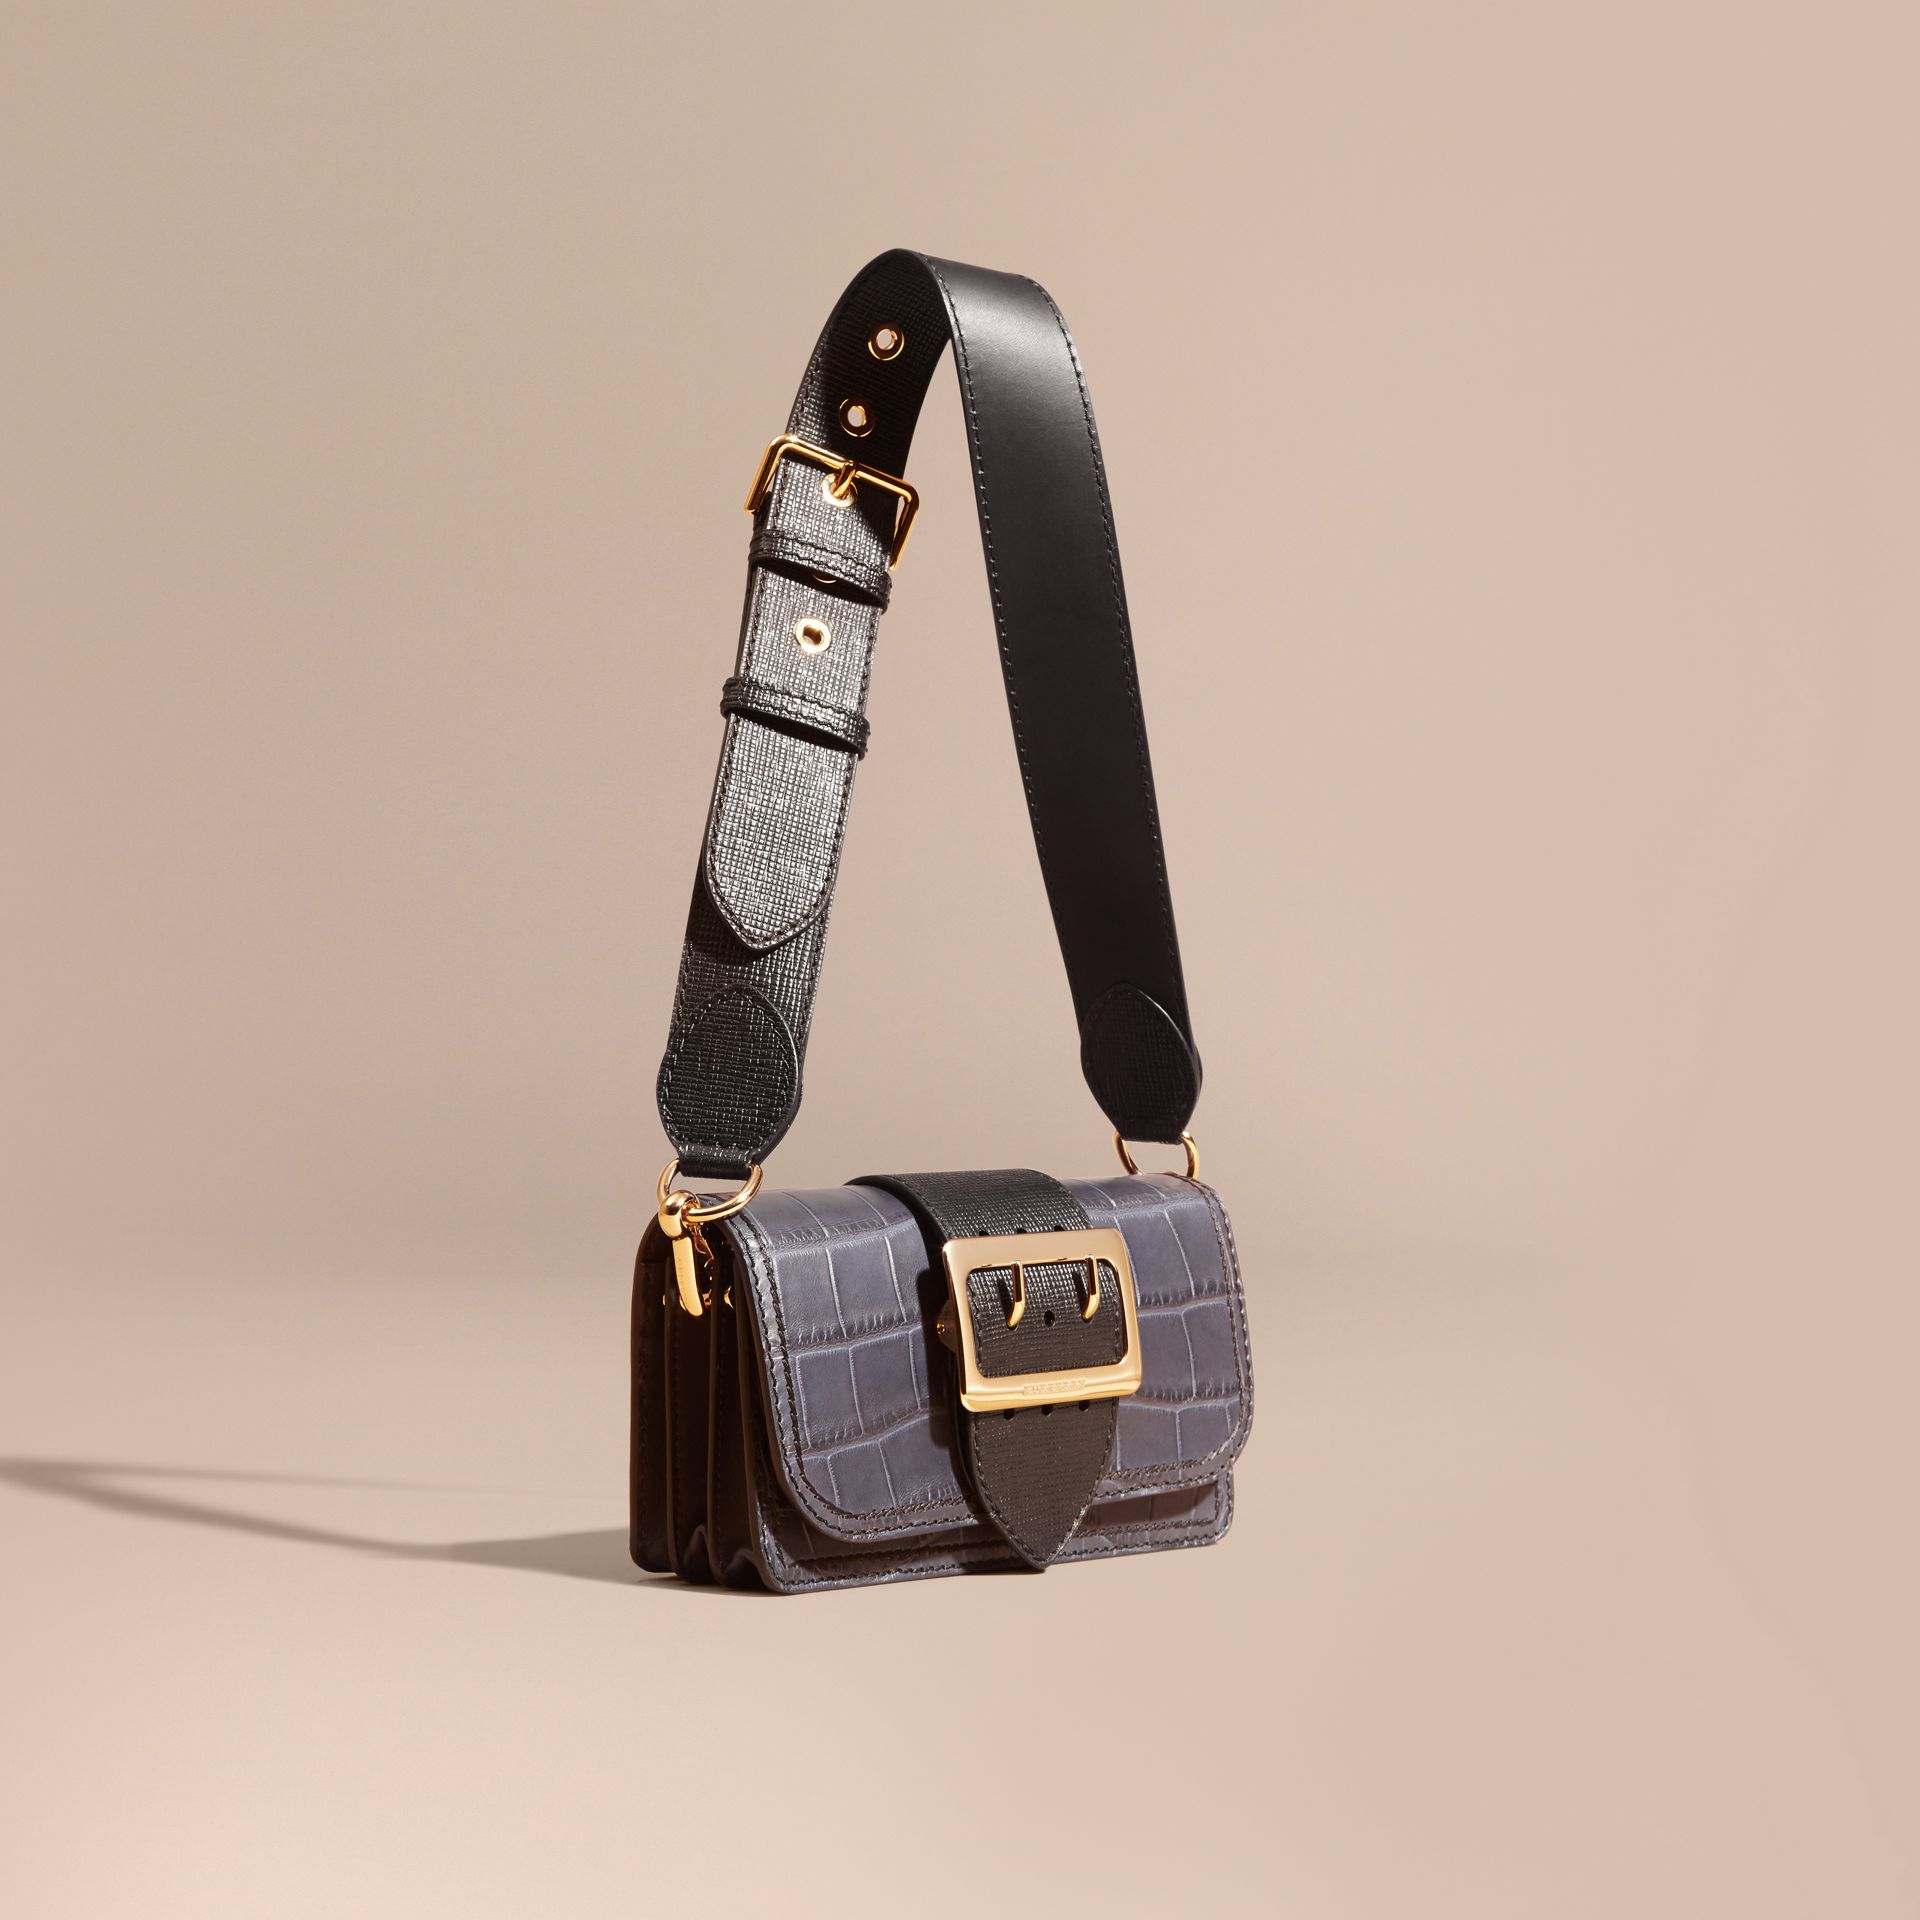 The Small Buckle Bag in Alligator and Leather in Navy / Black - Women | Burberry Canada - gallery image 1